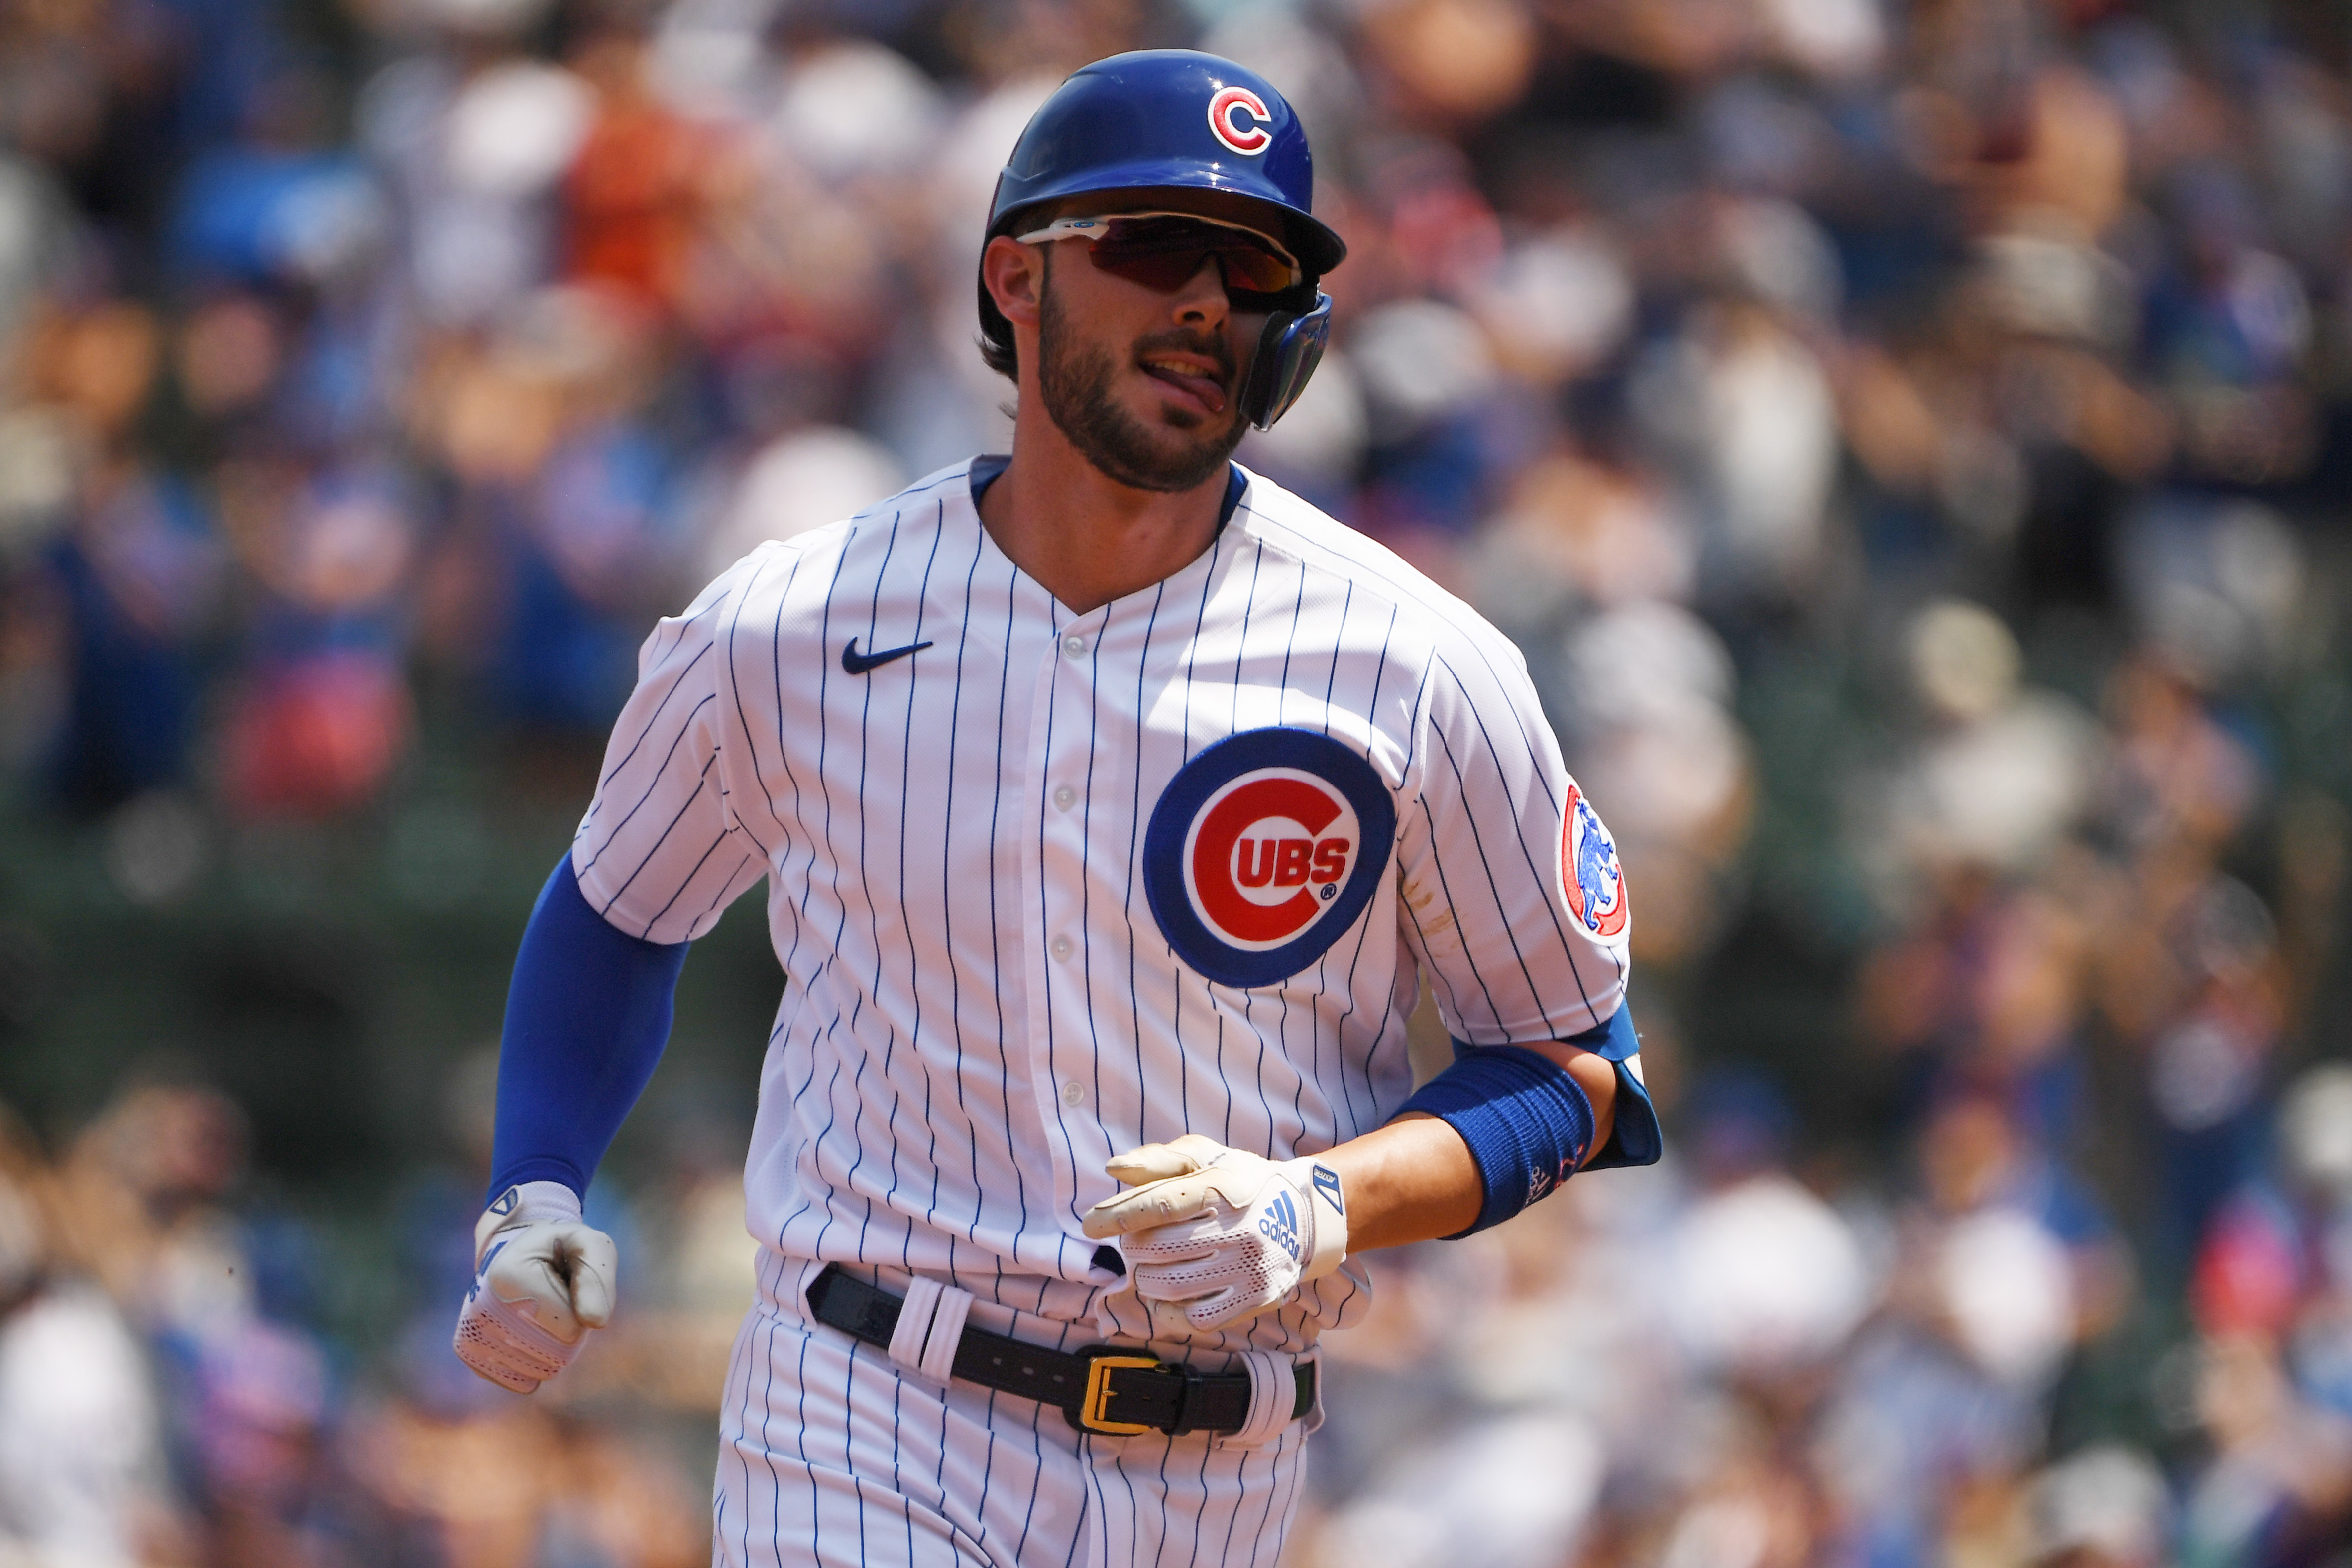 Kris Bryant #17 of the Chicago Cubs hits a two-run home run against the Arizona Diamondbacks at Wrigley Field on July 25, 2021 in Chicago, Illinois.